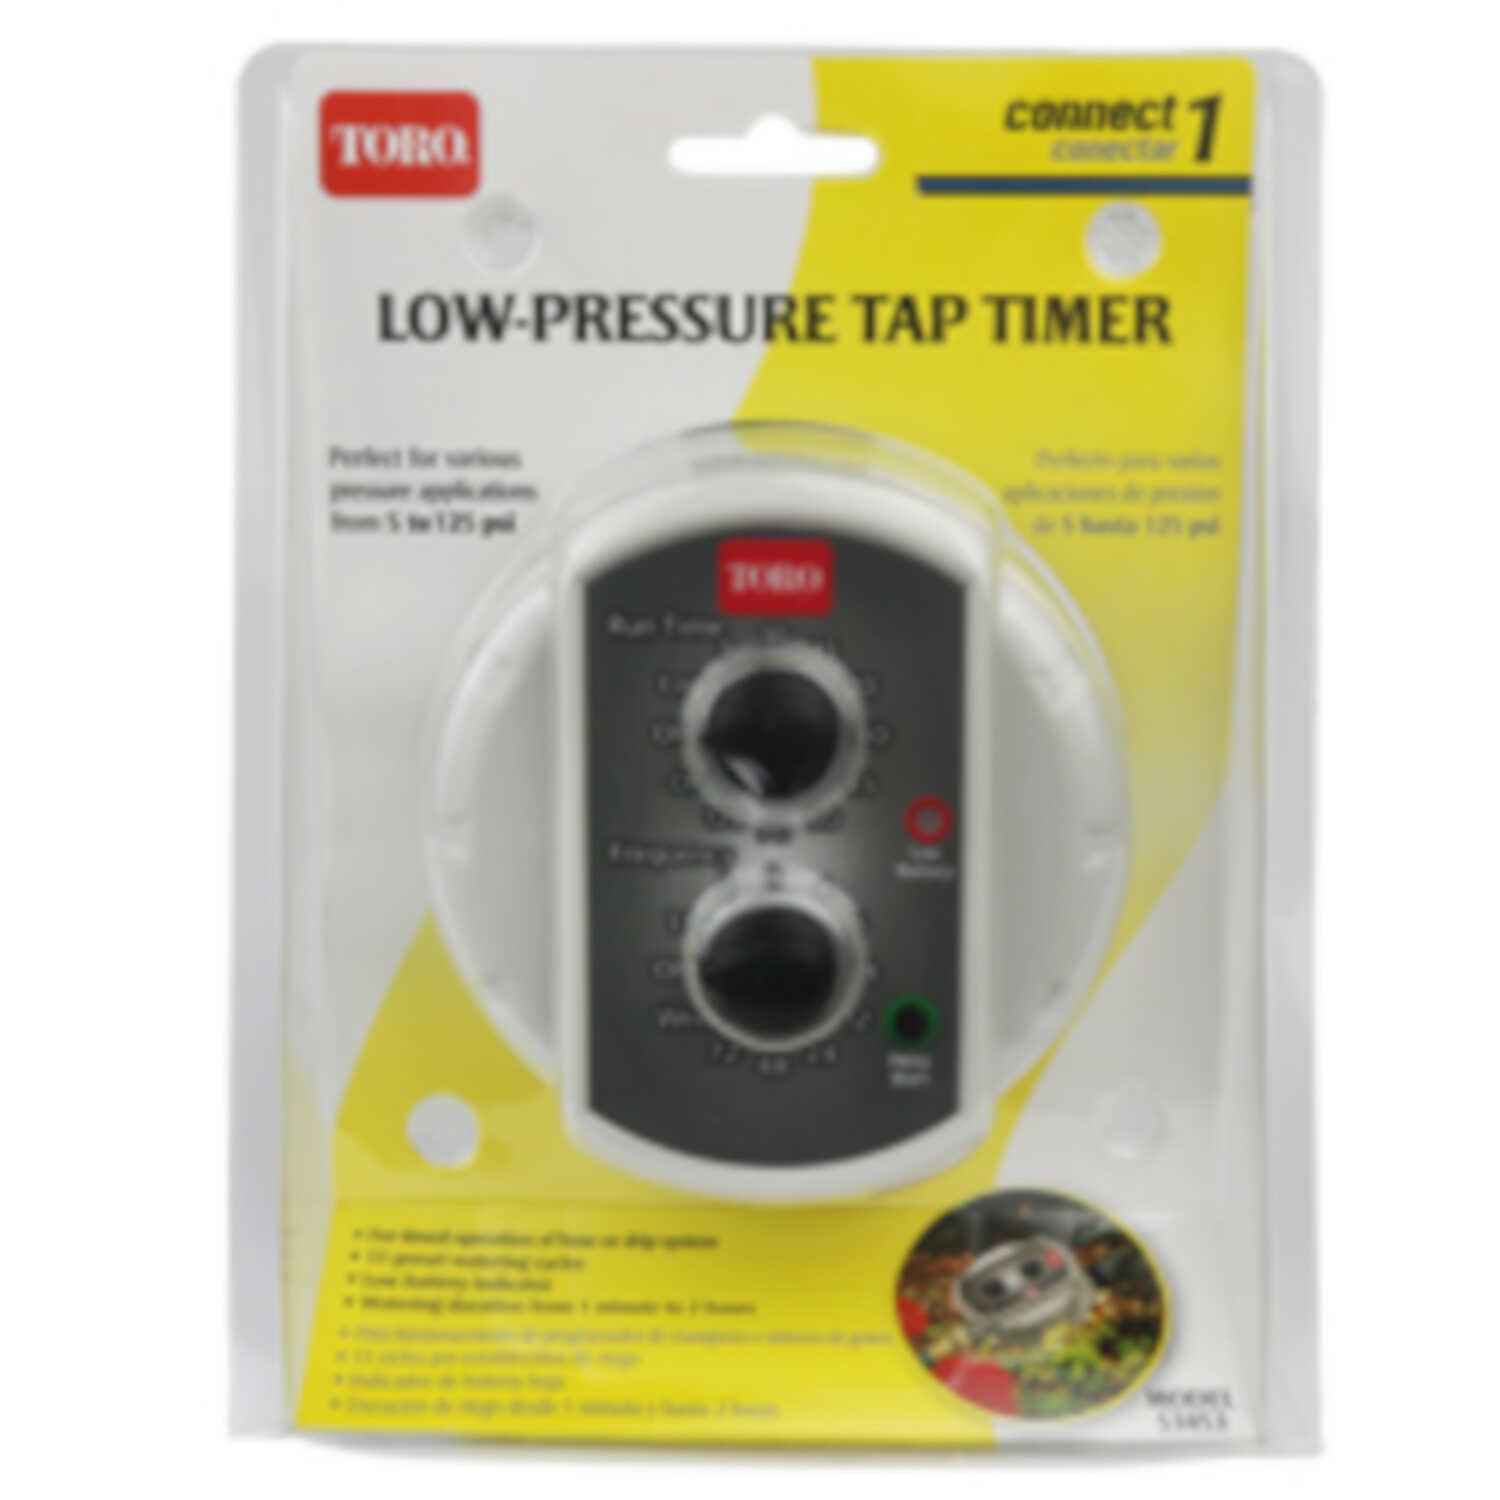 Toro  Programmable 1 zone Low-Pressure Tap Timer